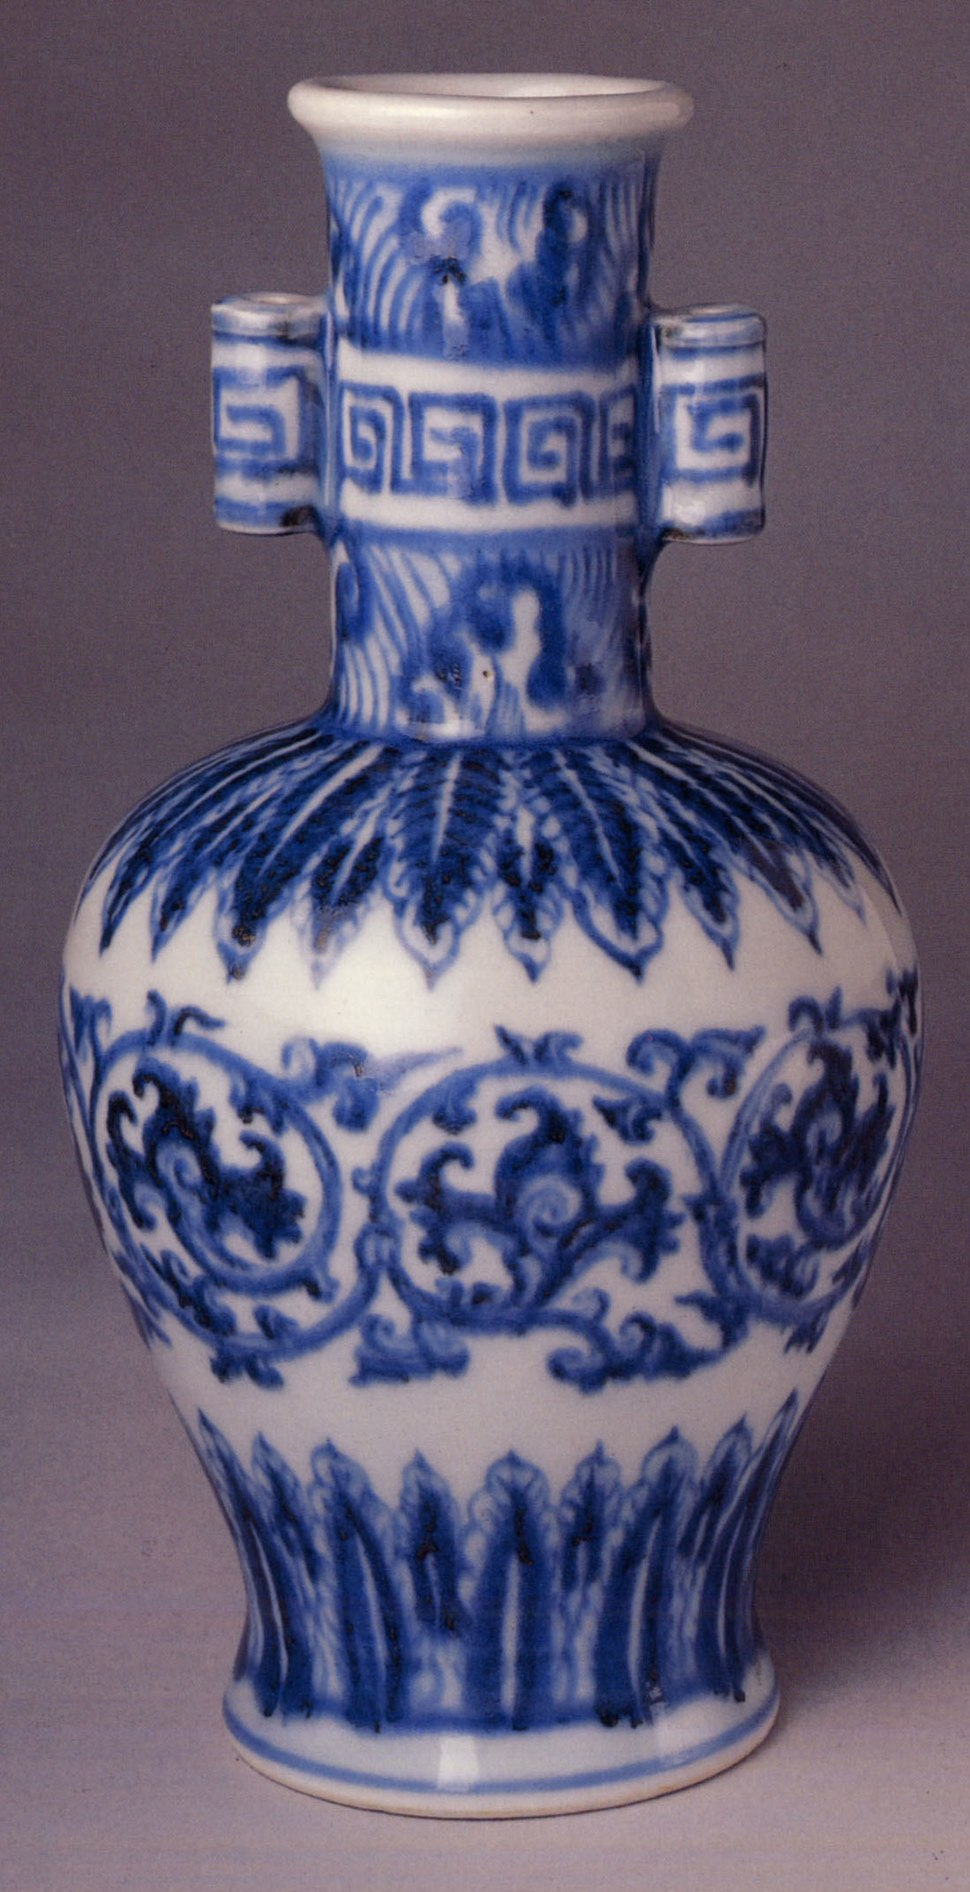 Ming dynasty Xuande mark and period (1426–35) imperial blue and white vase, from The Metropolitan Museum of Art. 明宣德 景德鎮窯青花貫耳瓶, 纽约大都博物馆